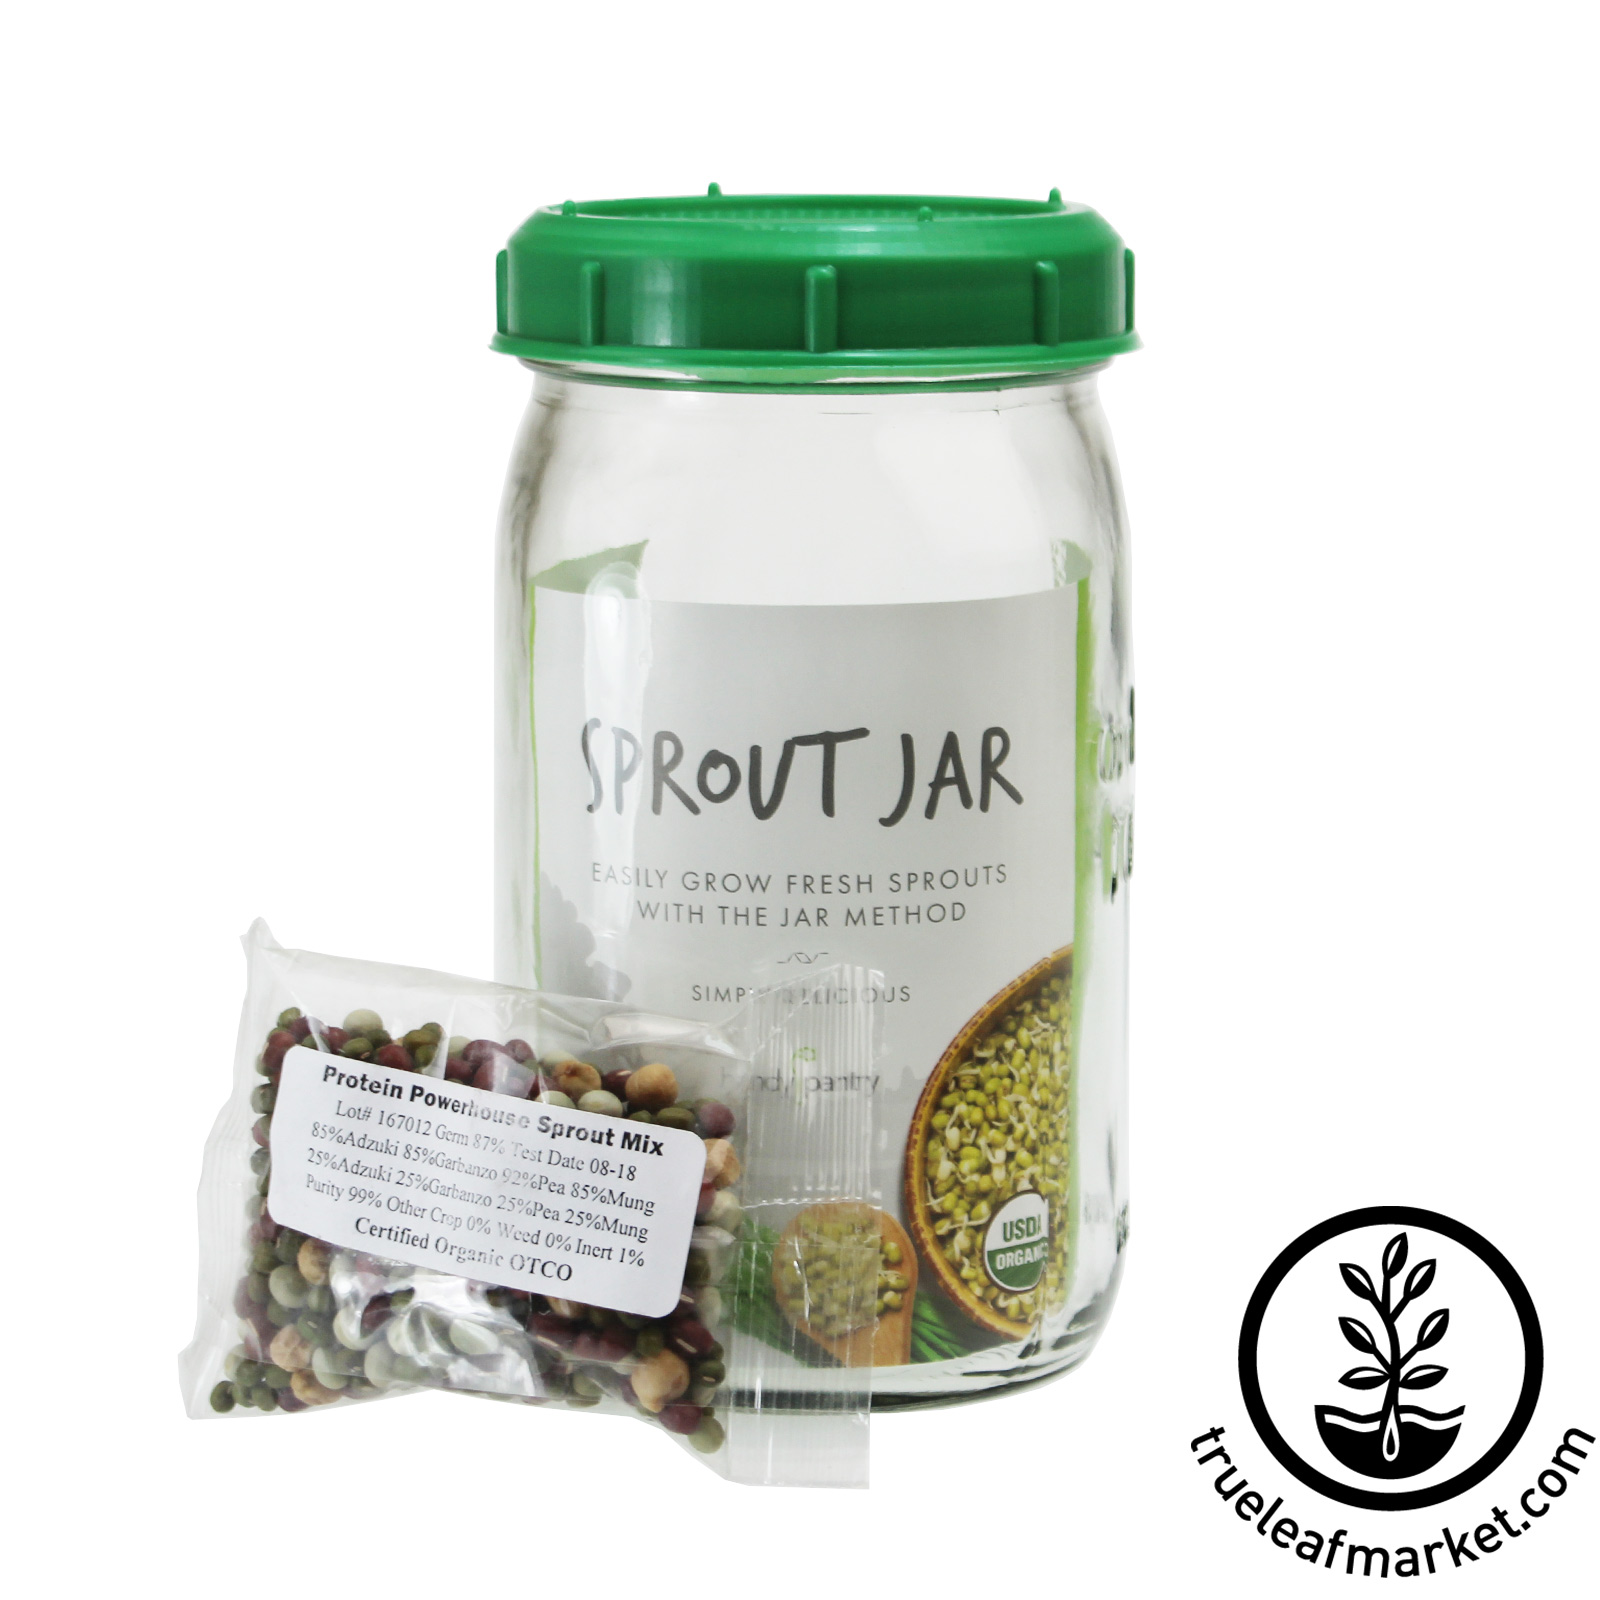 Sprouting Jar - Quart Size Seed Sprouter Jar